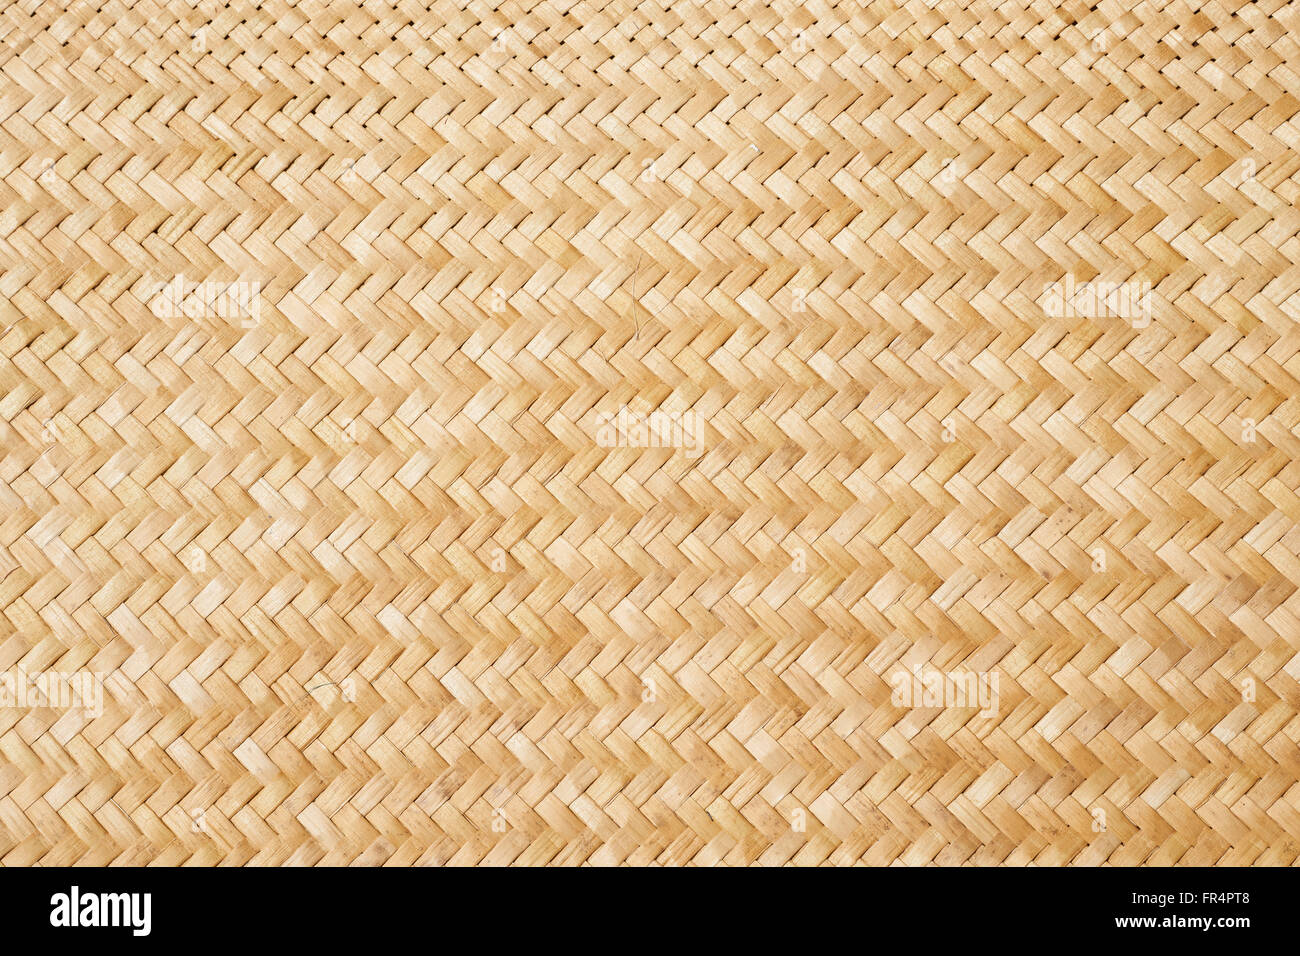 Traditional New Zealand flax weaving, detail of a woven ...